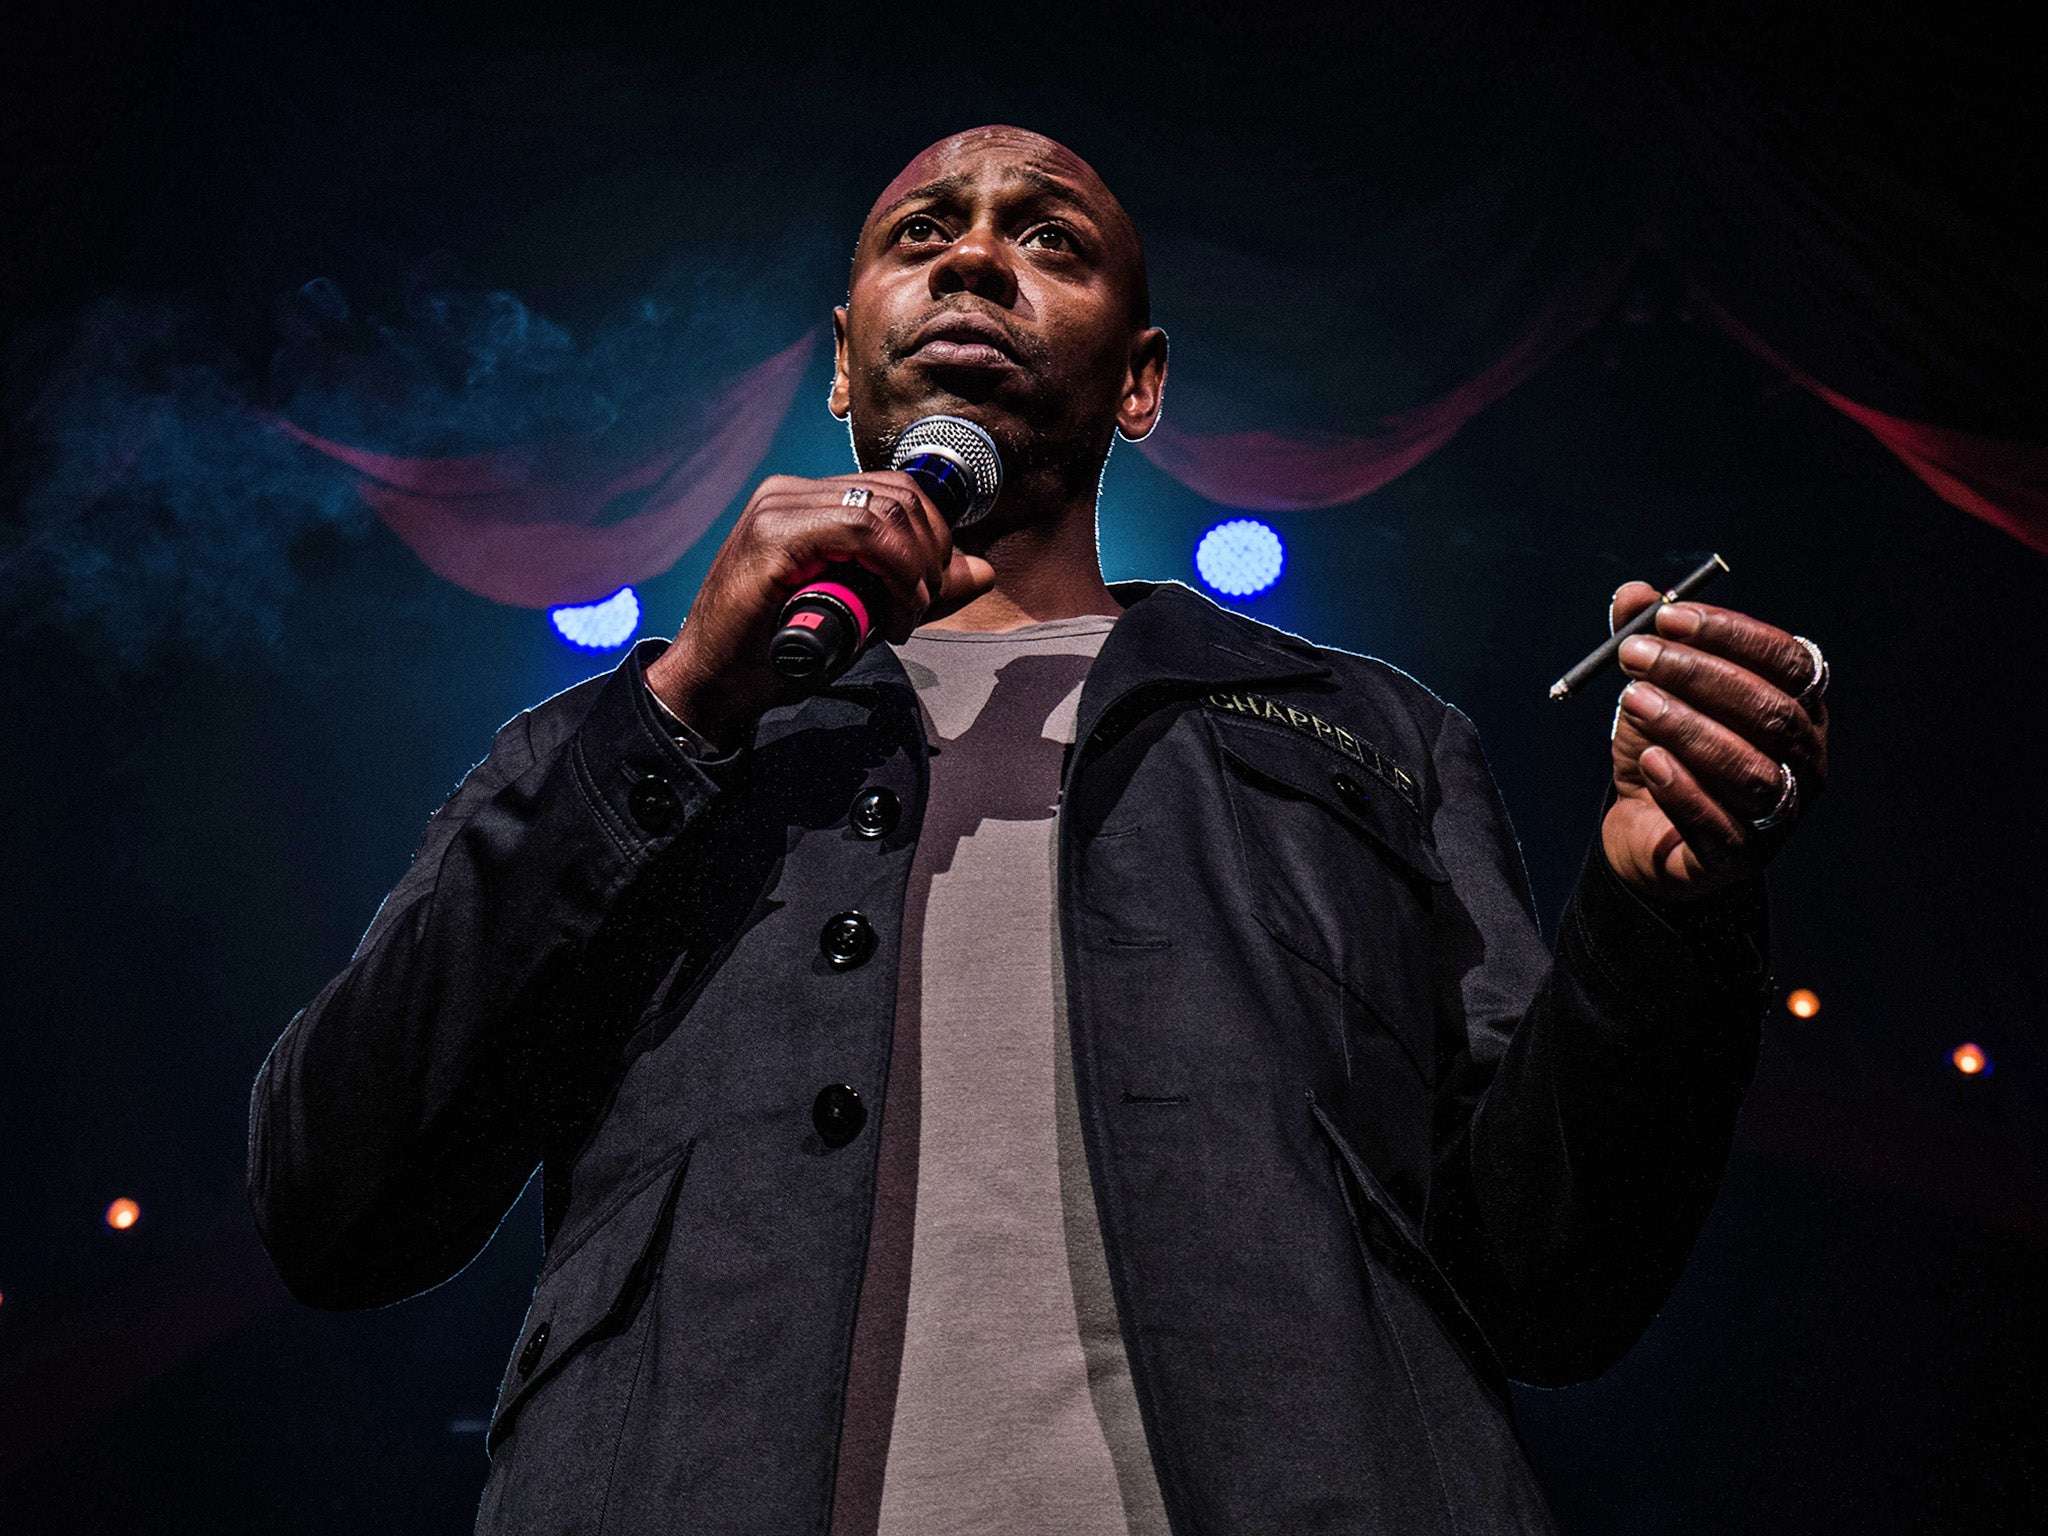 How Dave Chappelle has stumbled into the #MeToo movement